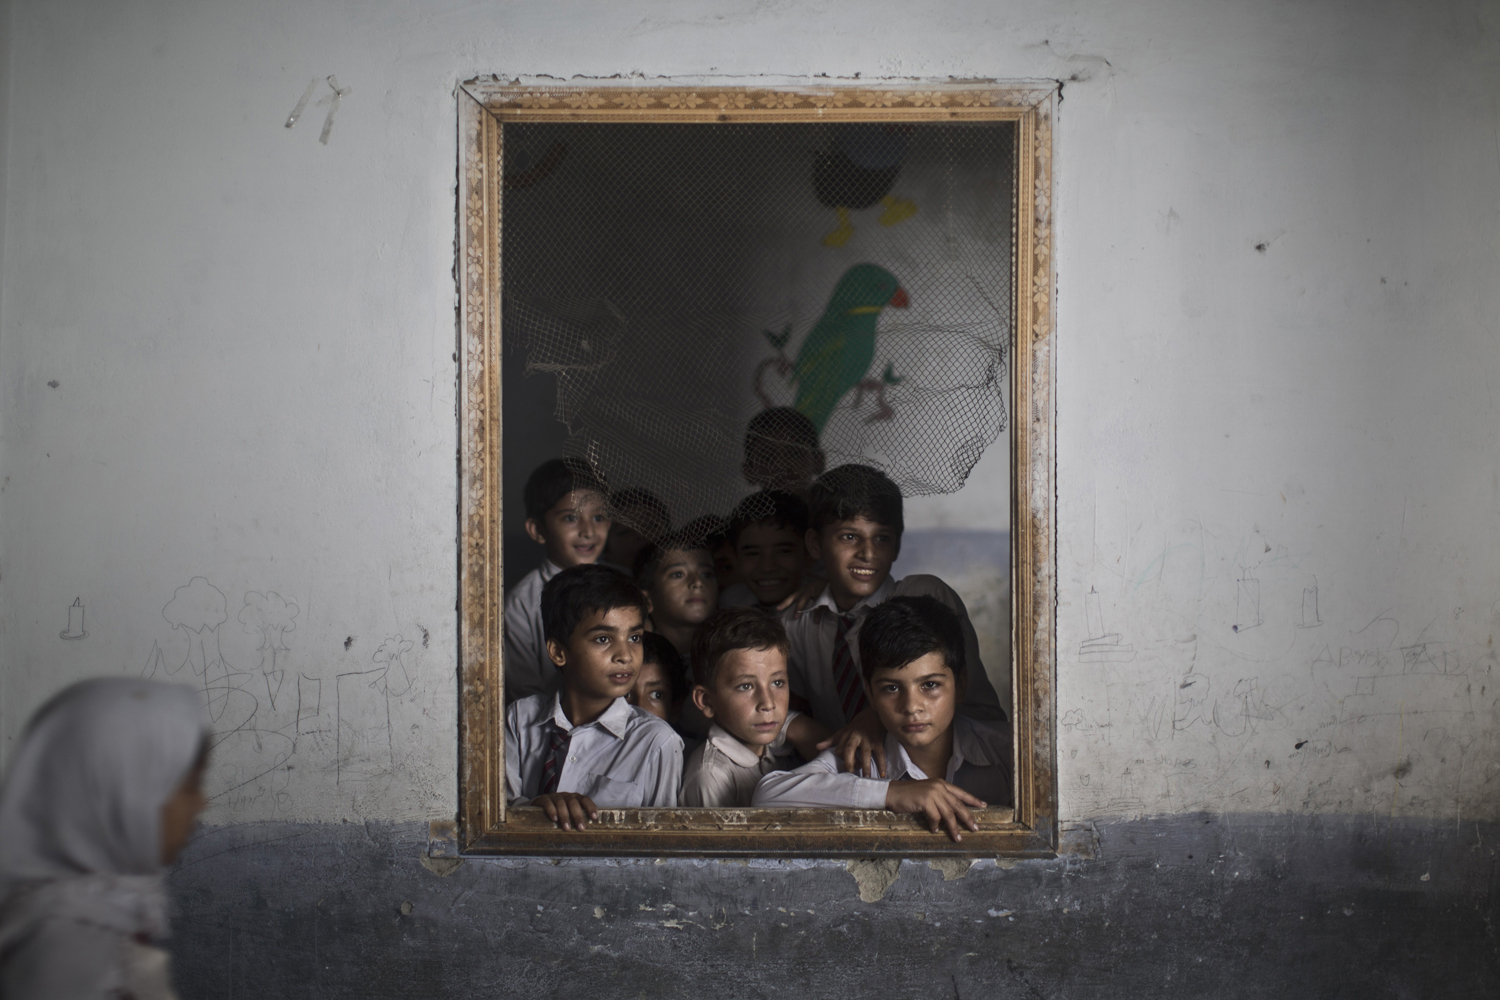 Oct. 9, 2013. Pakistani schoolboys look out the window of their classroom at other classmates chanting prayers to commemorate the anniversary of Malala's shooting by Taliban, at a school in Rawalpindi, Pakistan.